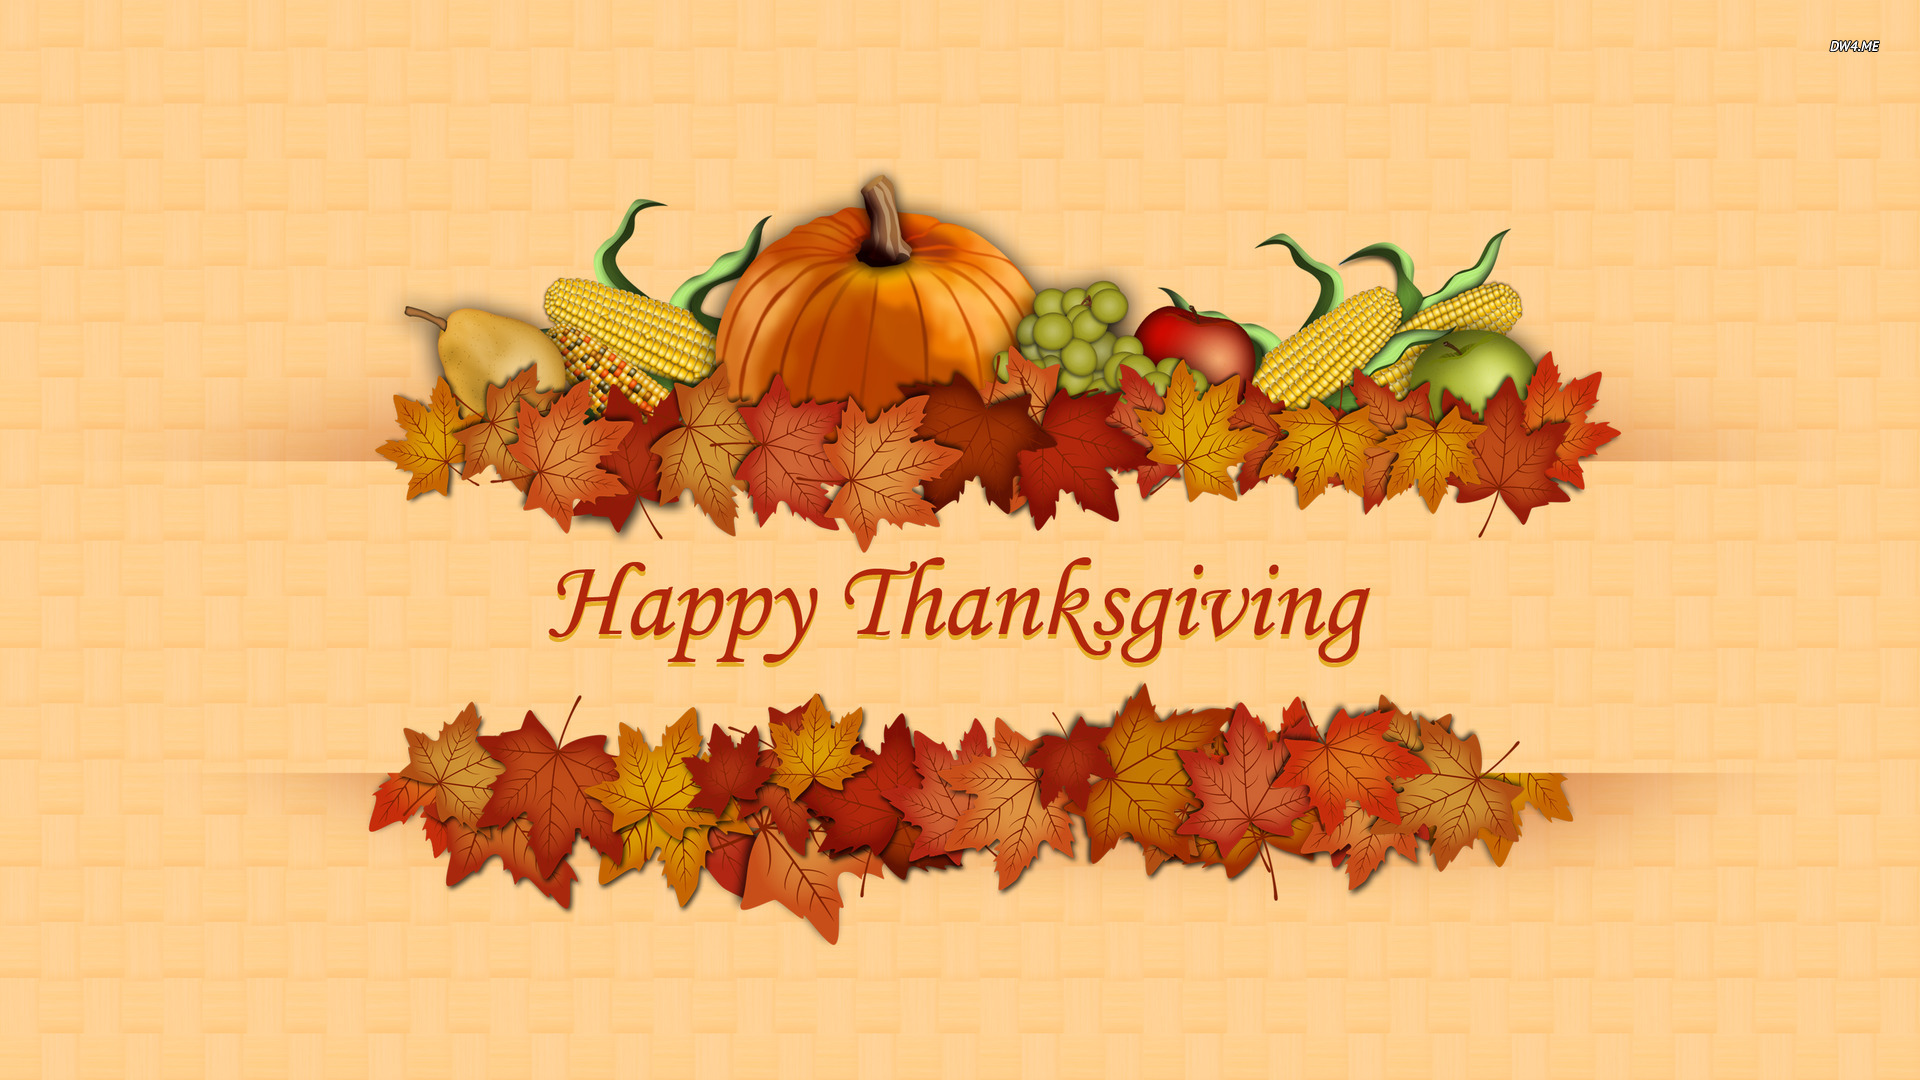 Happy Thanksgiving Wallpaper Images amp Pictures   Becuo 1920x1080